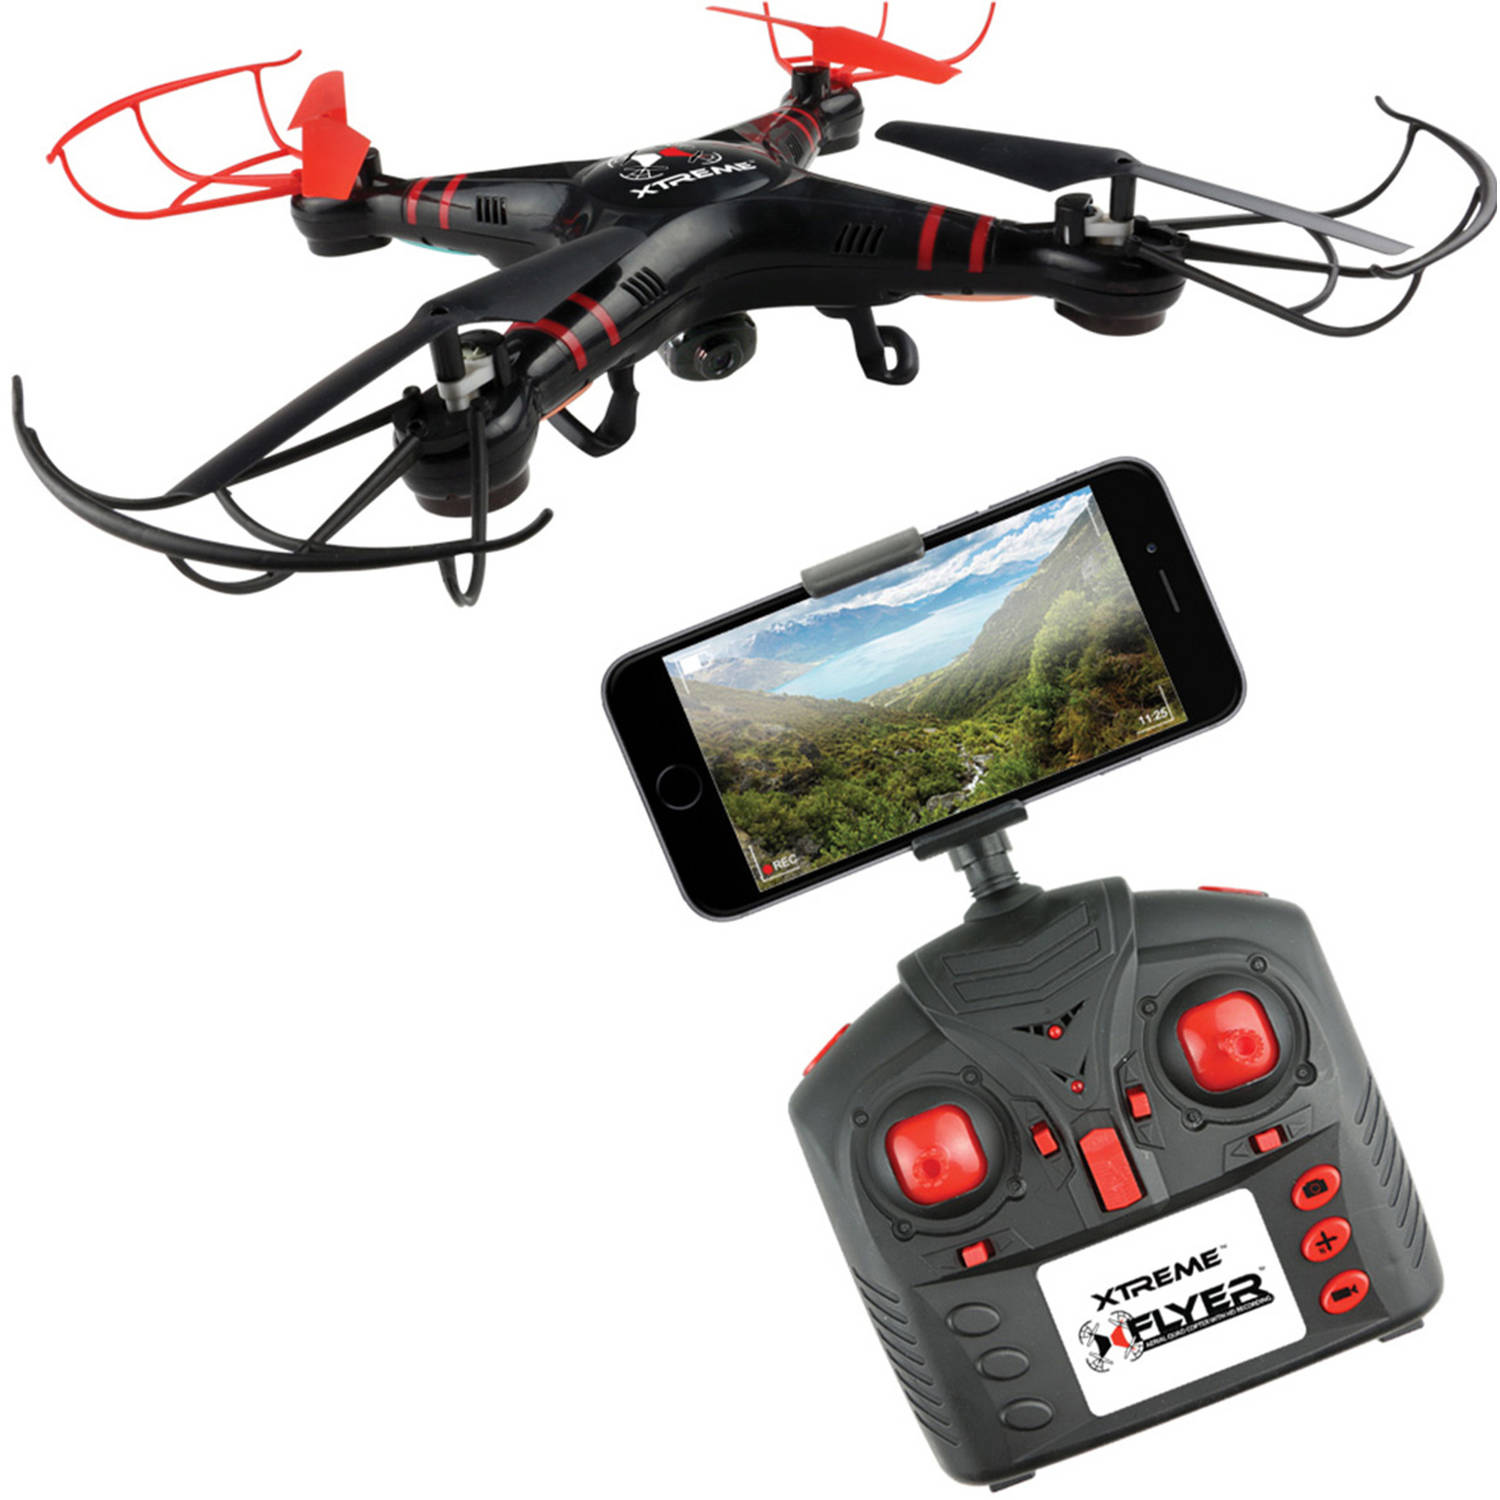 Xtreme Cables Quadcopter Drone with WiFi and Video